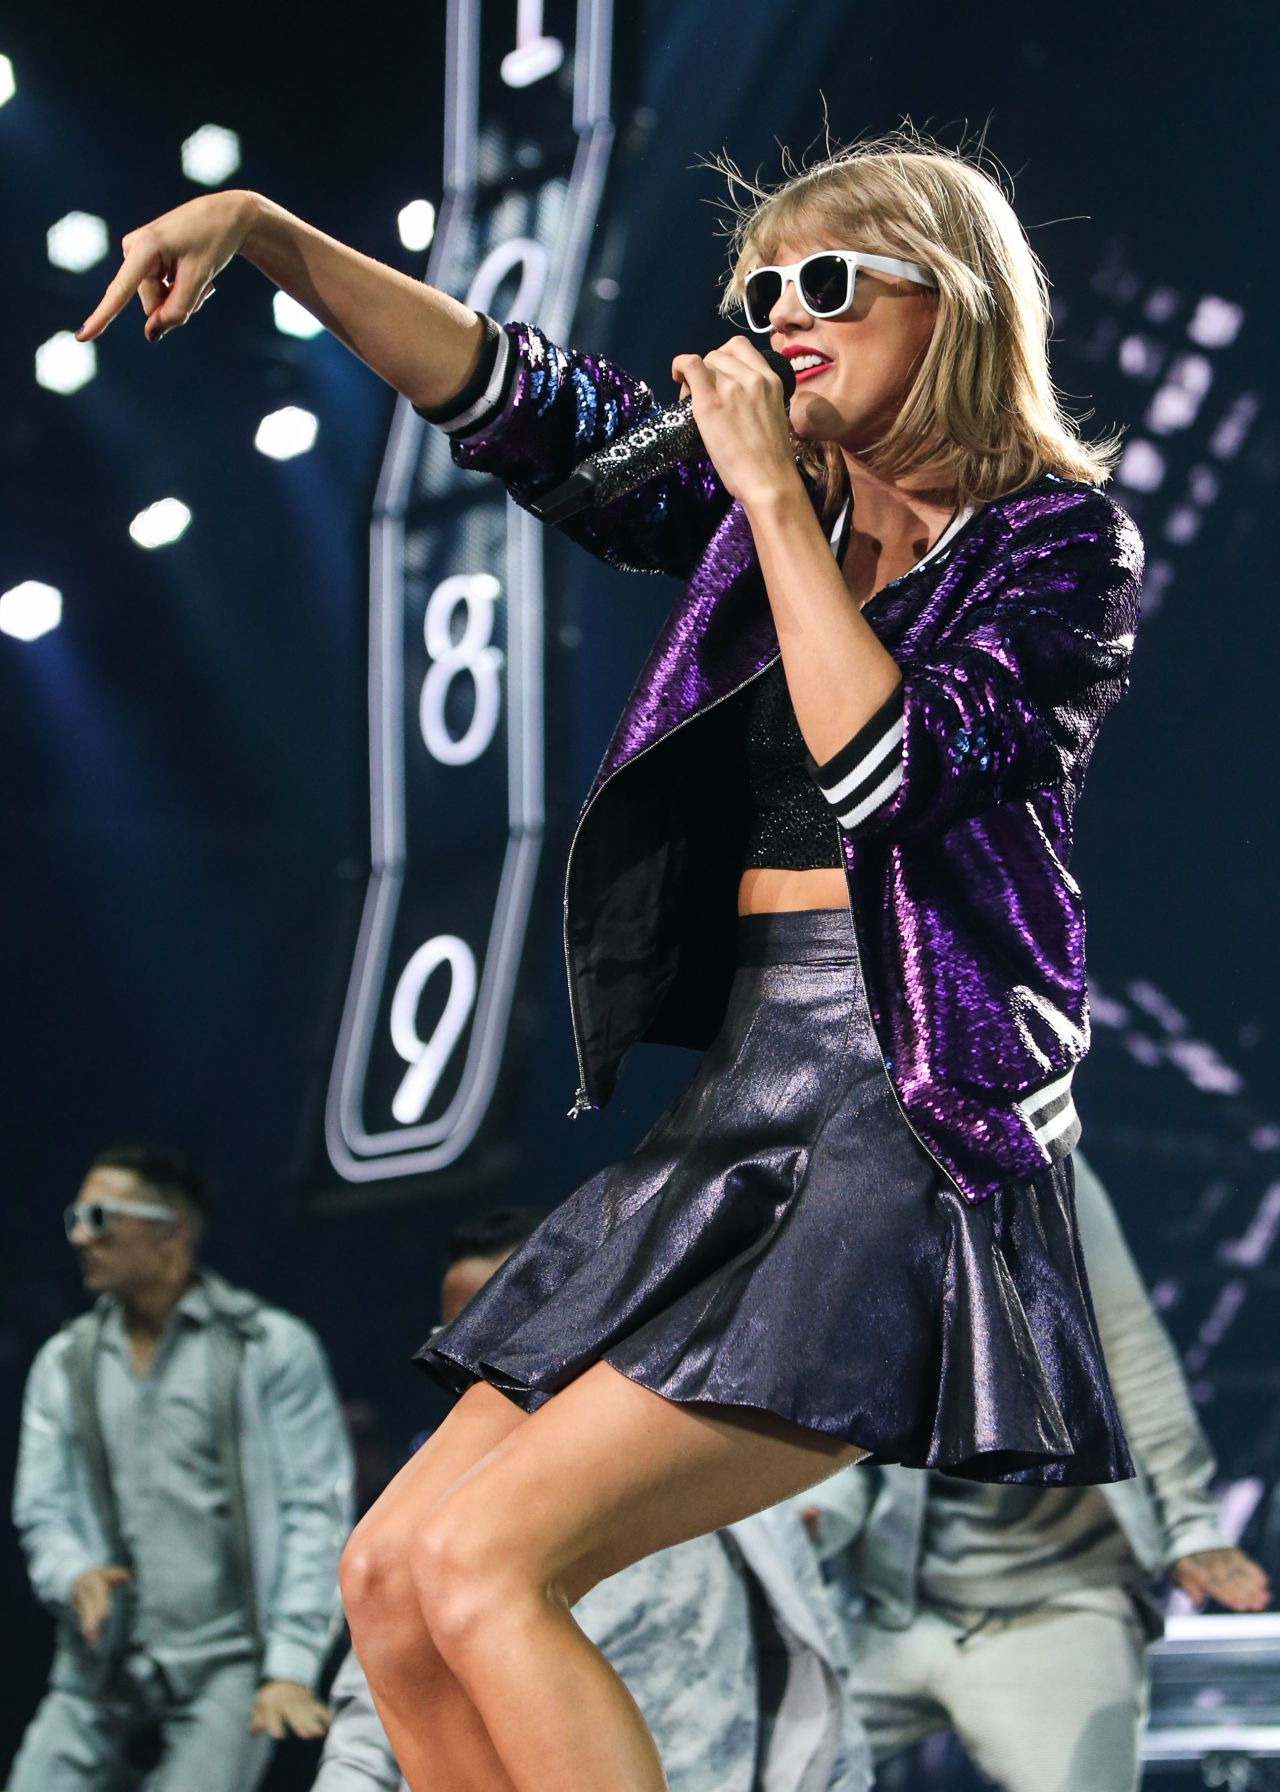 Taylor Swift - 1989 World Tour Concert in Los Angeles ... - photo#39